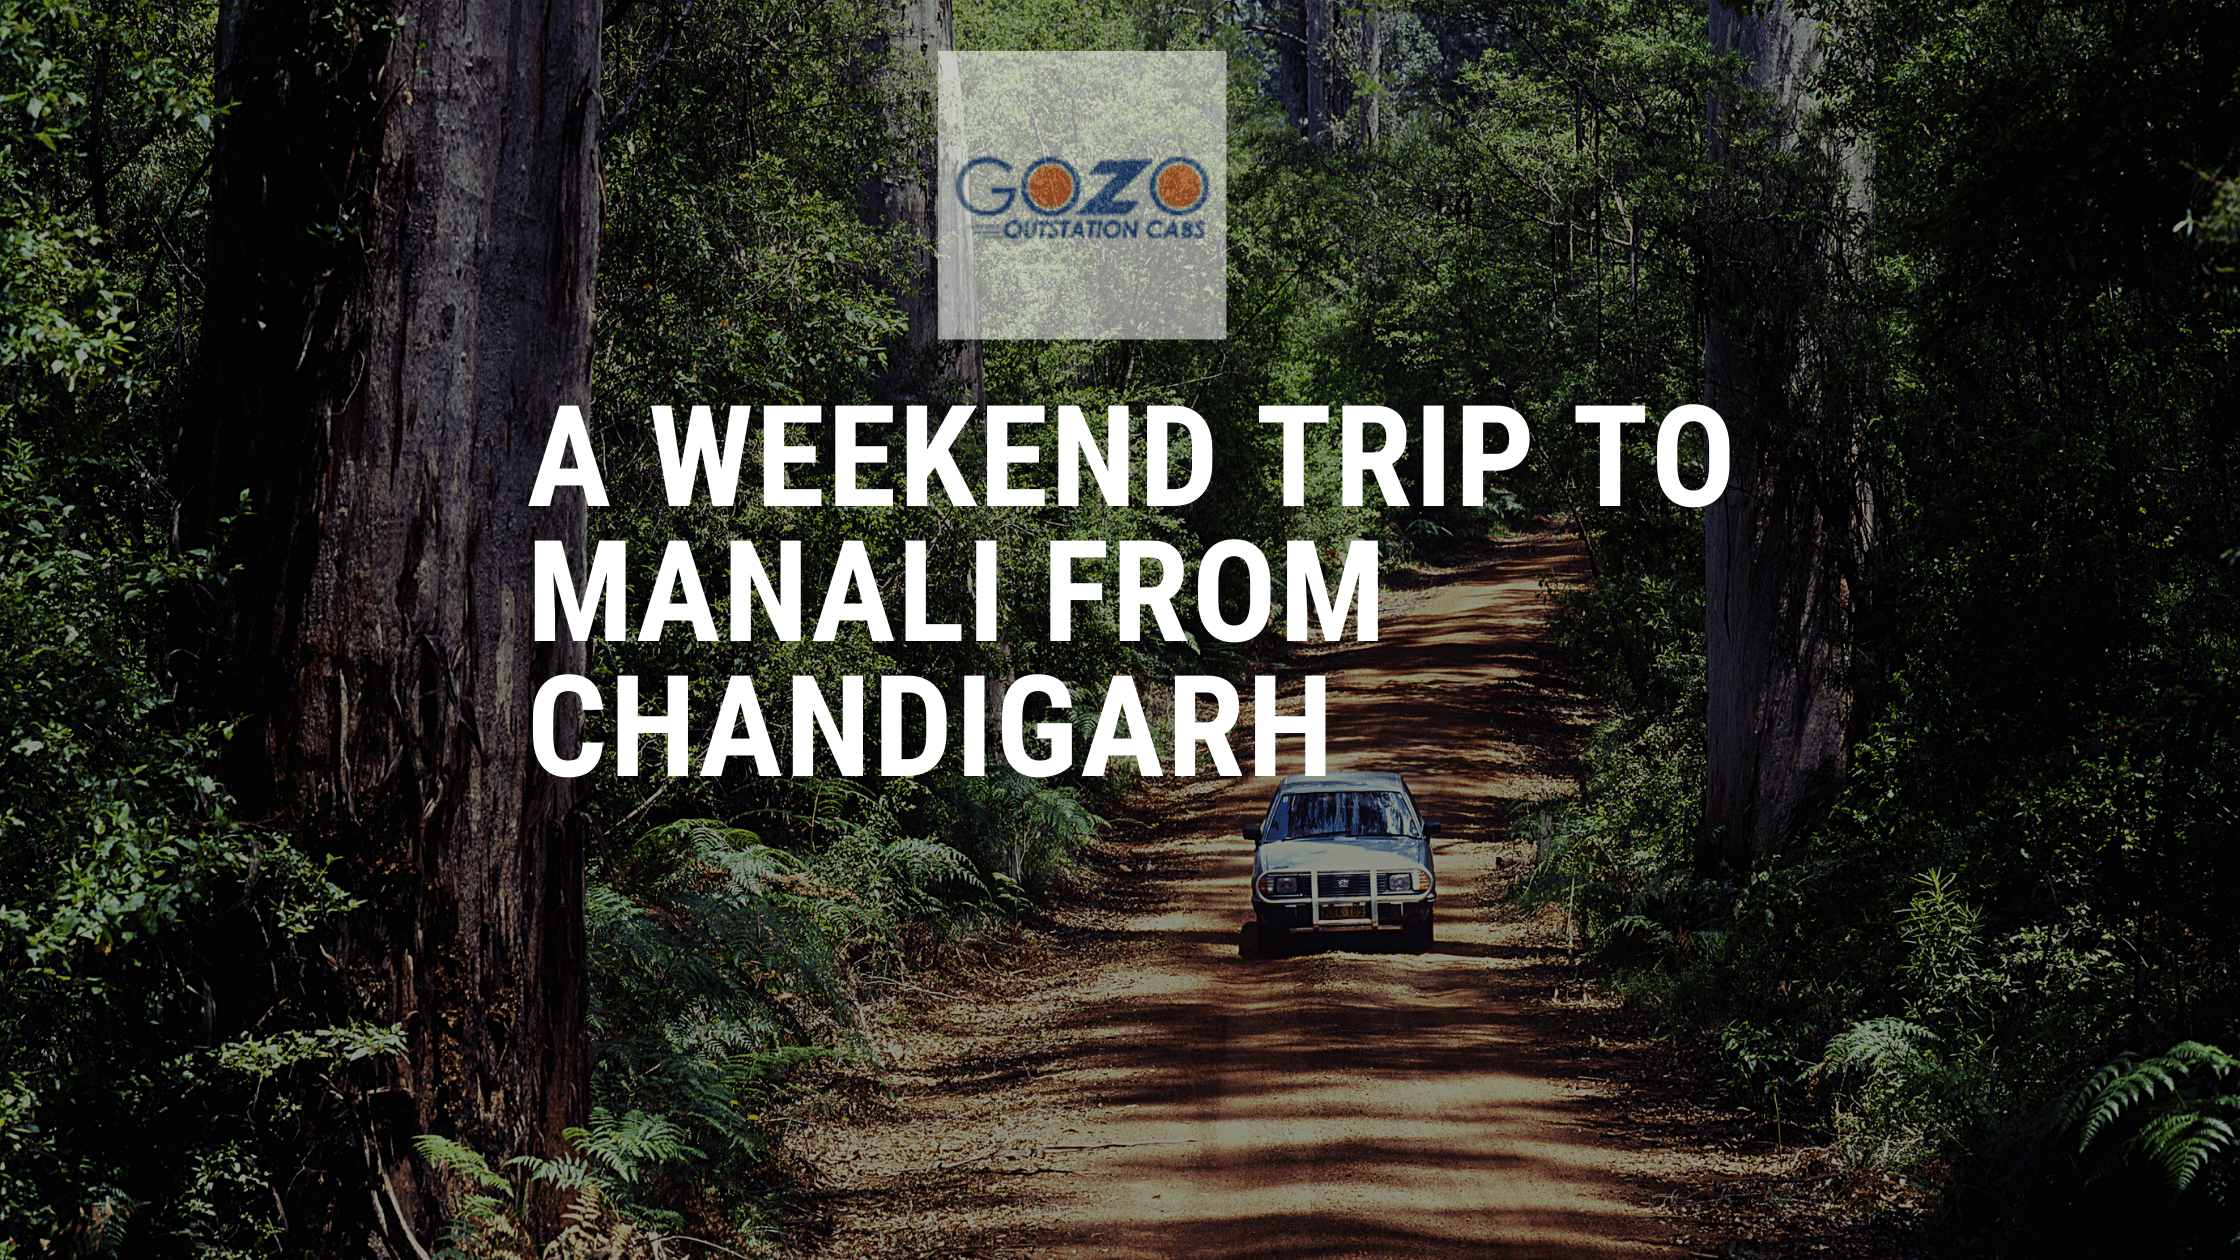 A short trip from Chandigarh to Manali